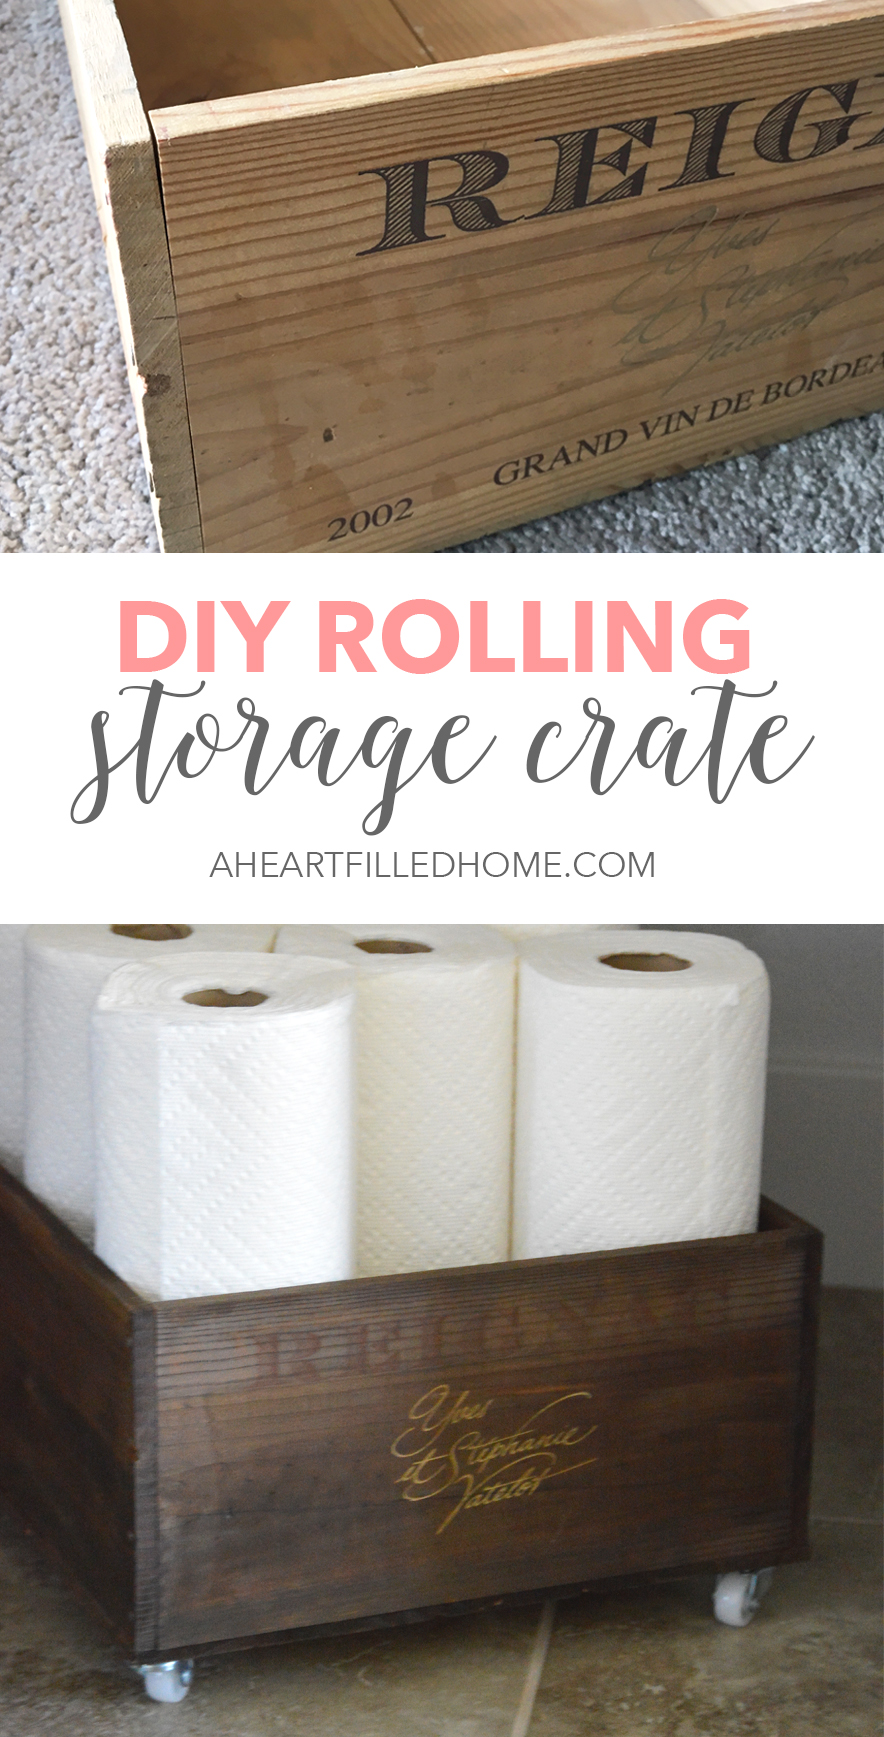 Diy Rolling Storage Crate A Heart Filled Home Diy Home